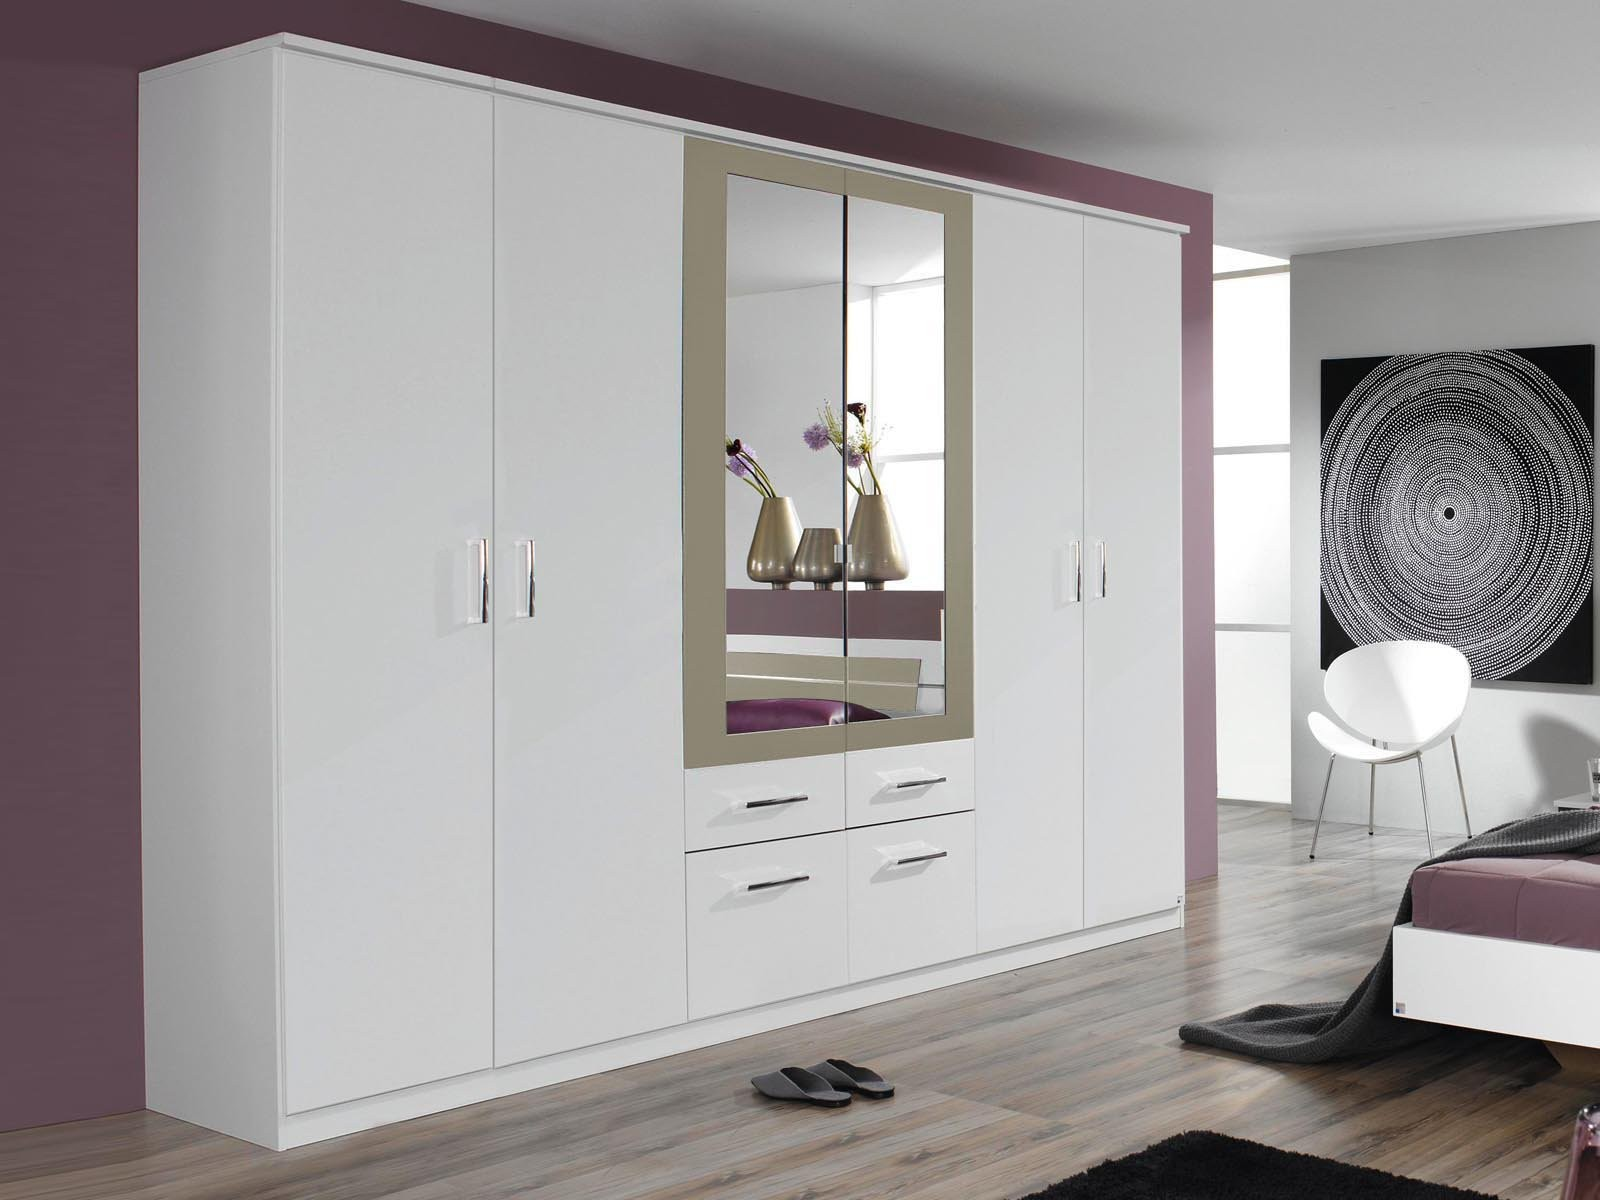 conforama armoire coulissante dressing portes kartel cm vente de armoire conforama with. Black Bedroom Furniture Sets. Home Design Ideas